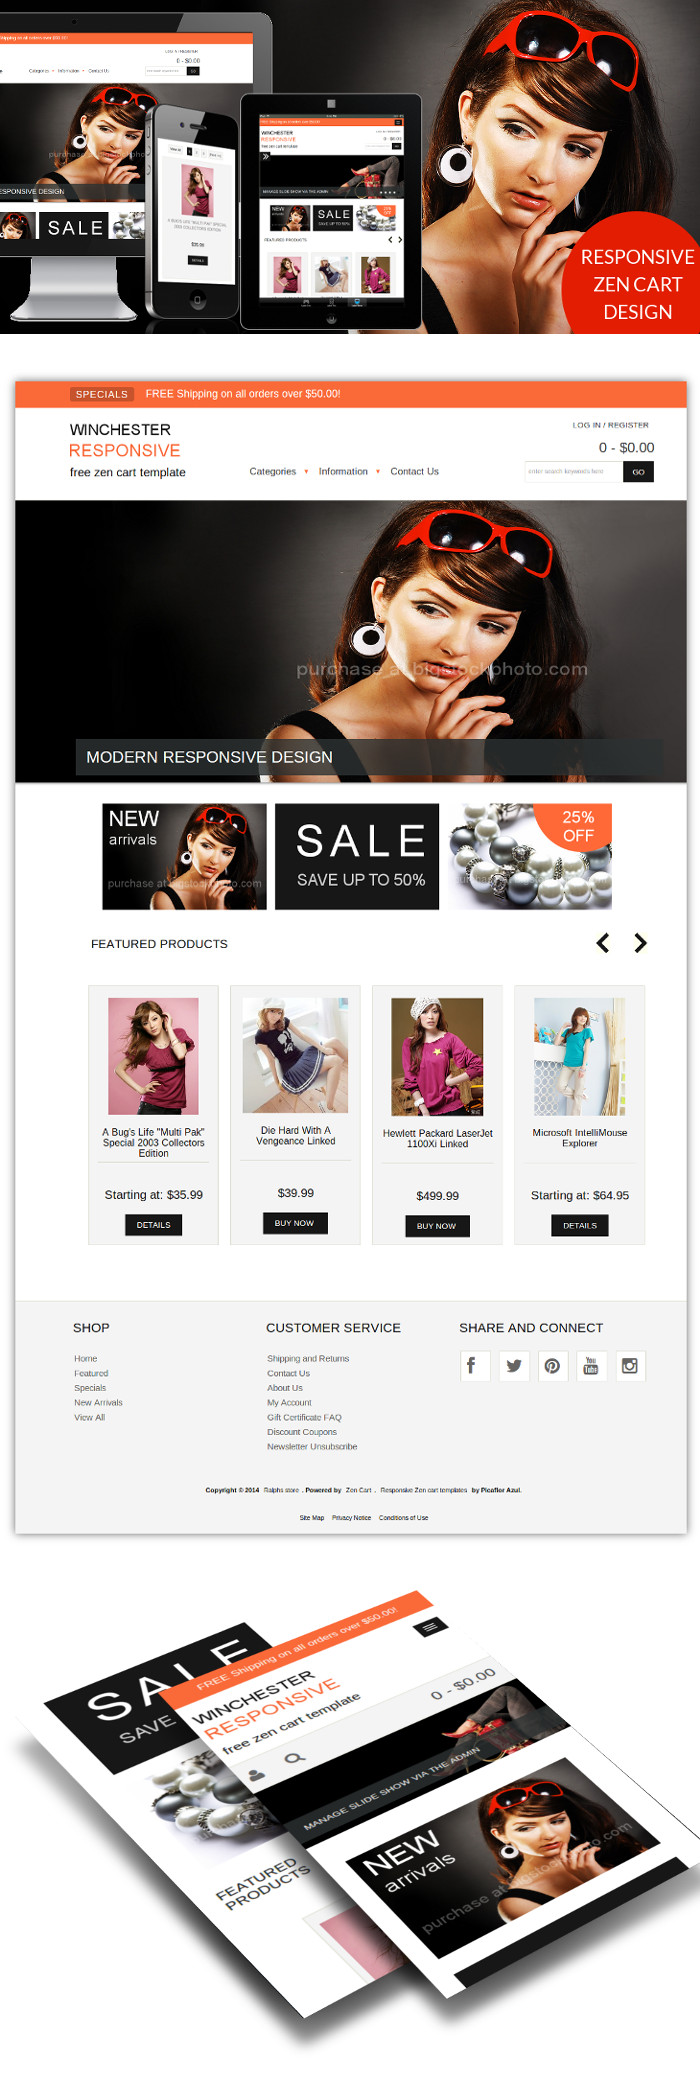 Zen Cart Templates Free Mobile Friendly Zen Cart Template Winchester Responsive